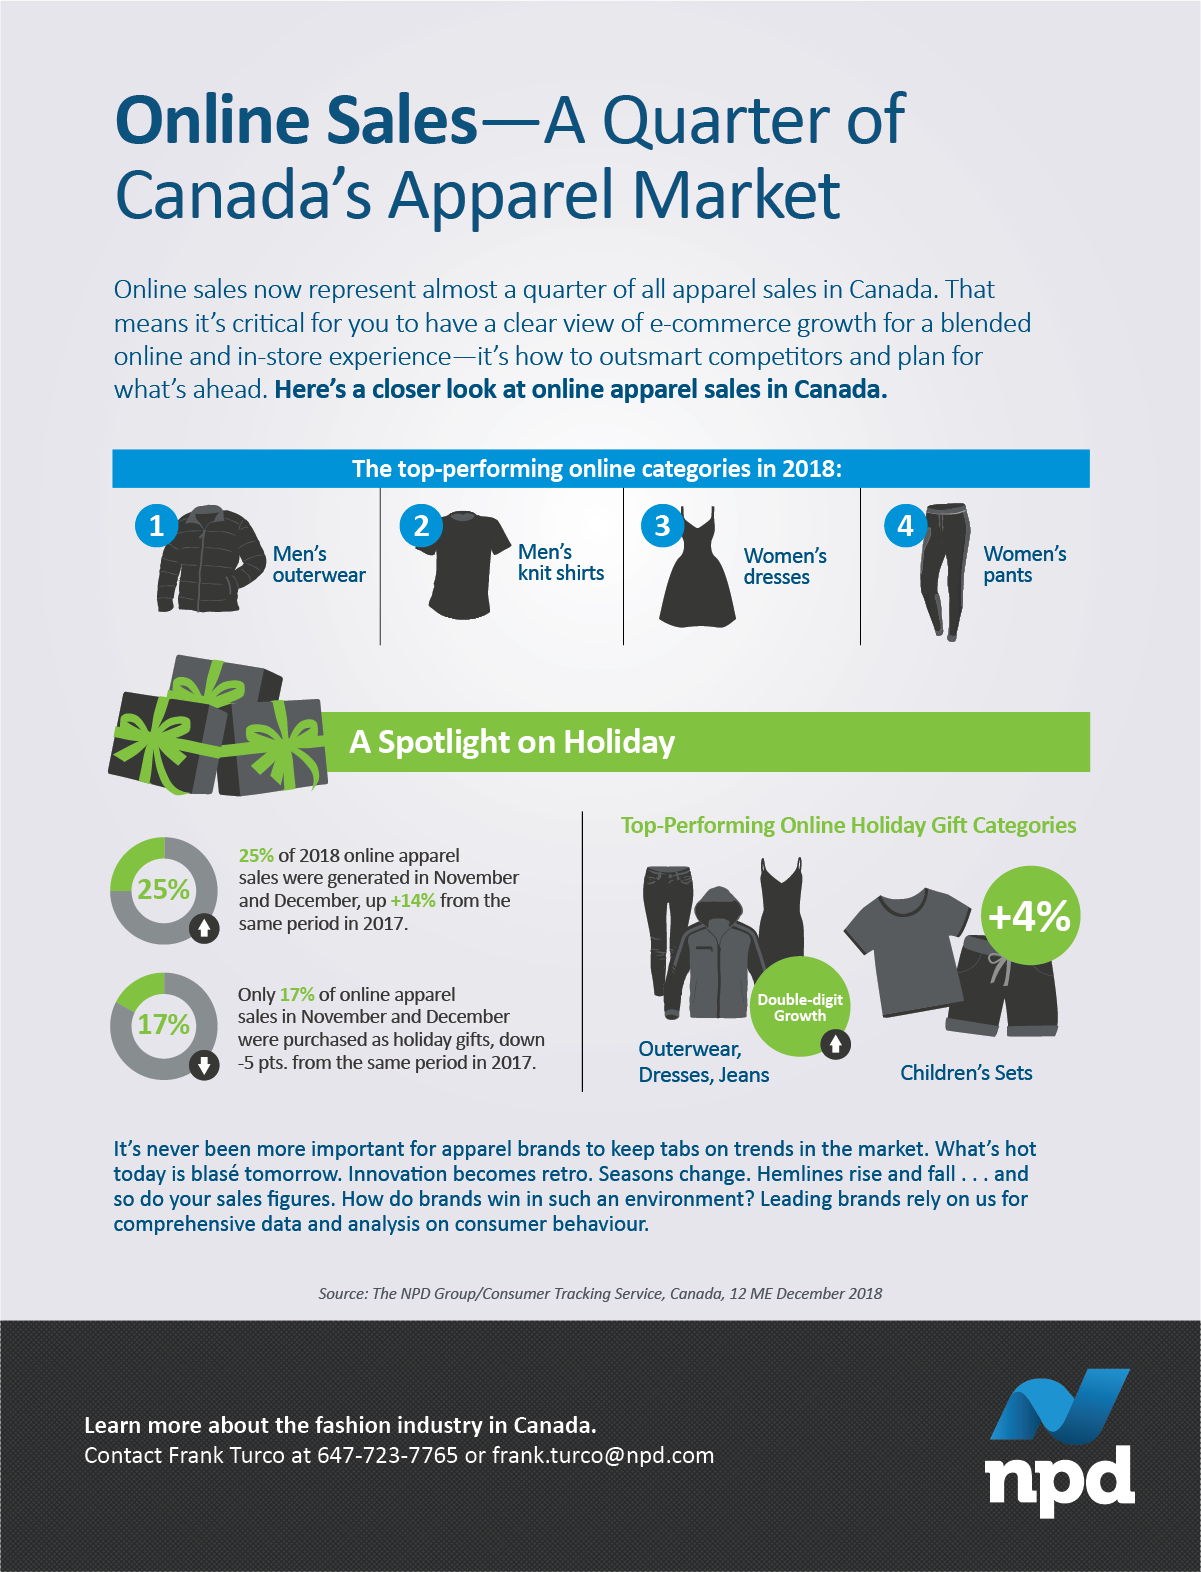 Online sales now represent almost a quarter of all apparel sales in Canada. Do you have a clear view of e-commerce growth?